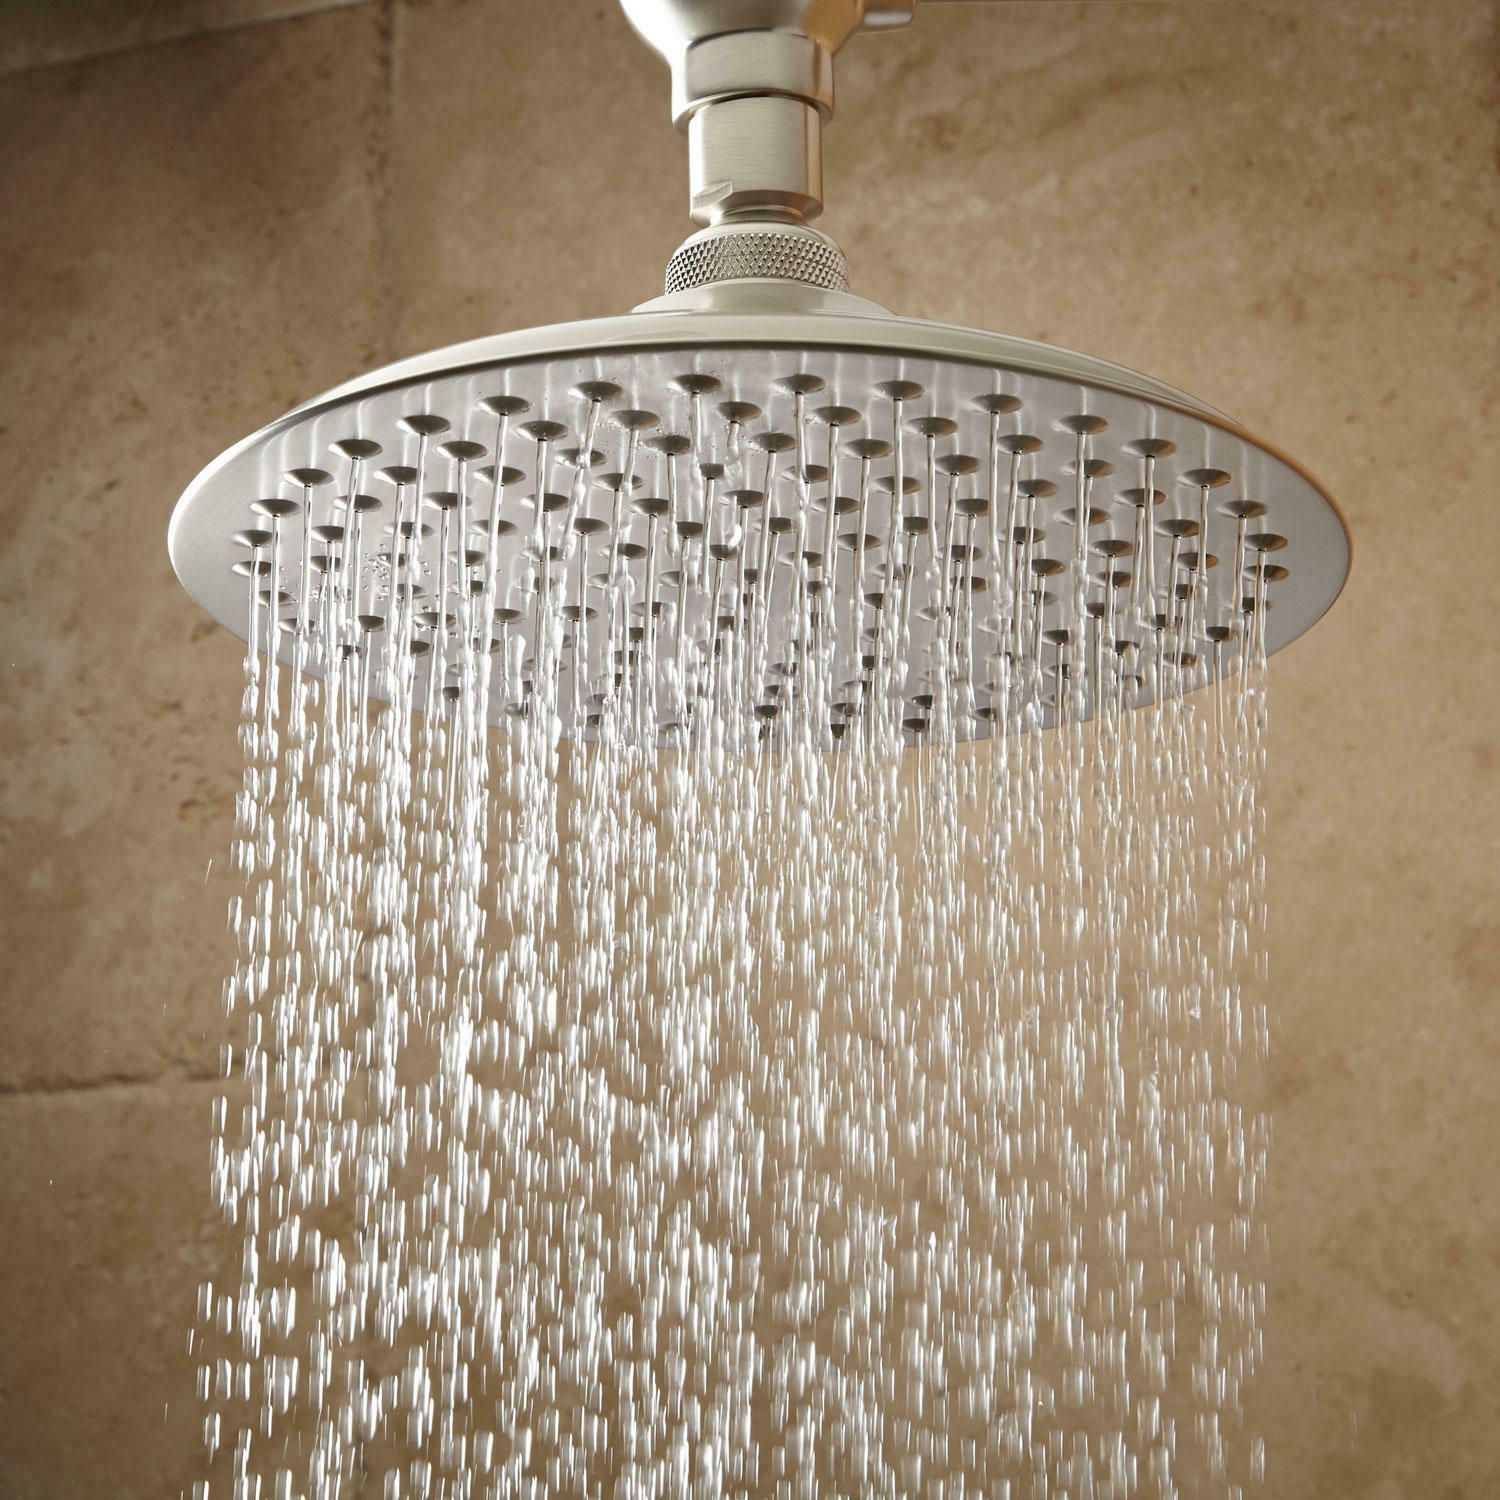 10 Bostonian Rainfall Shower Head With 19 Ornate Arm In Brushed